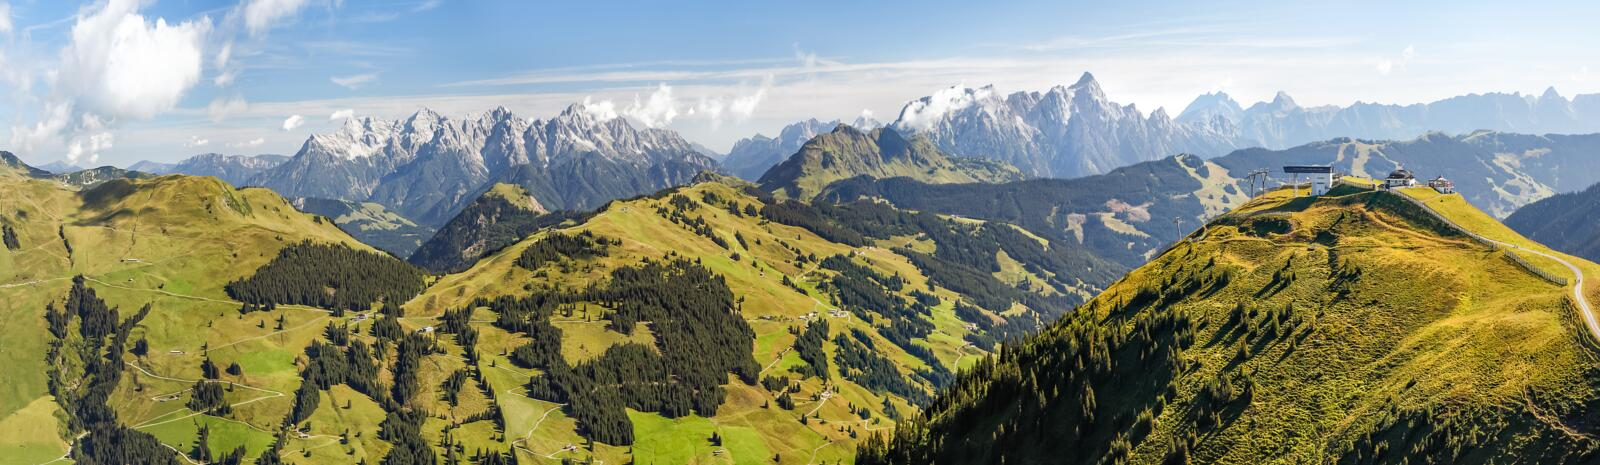 Panorama Saalbach Hinterglemm | © Christian Woeckinger